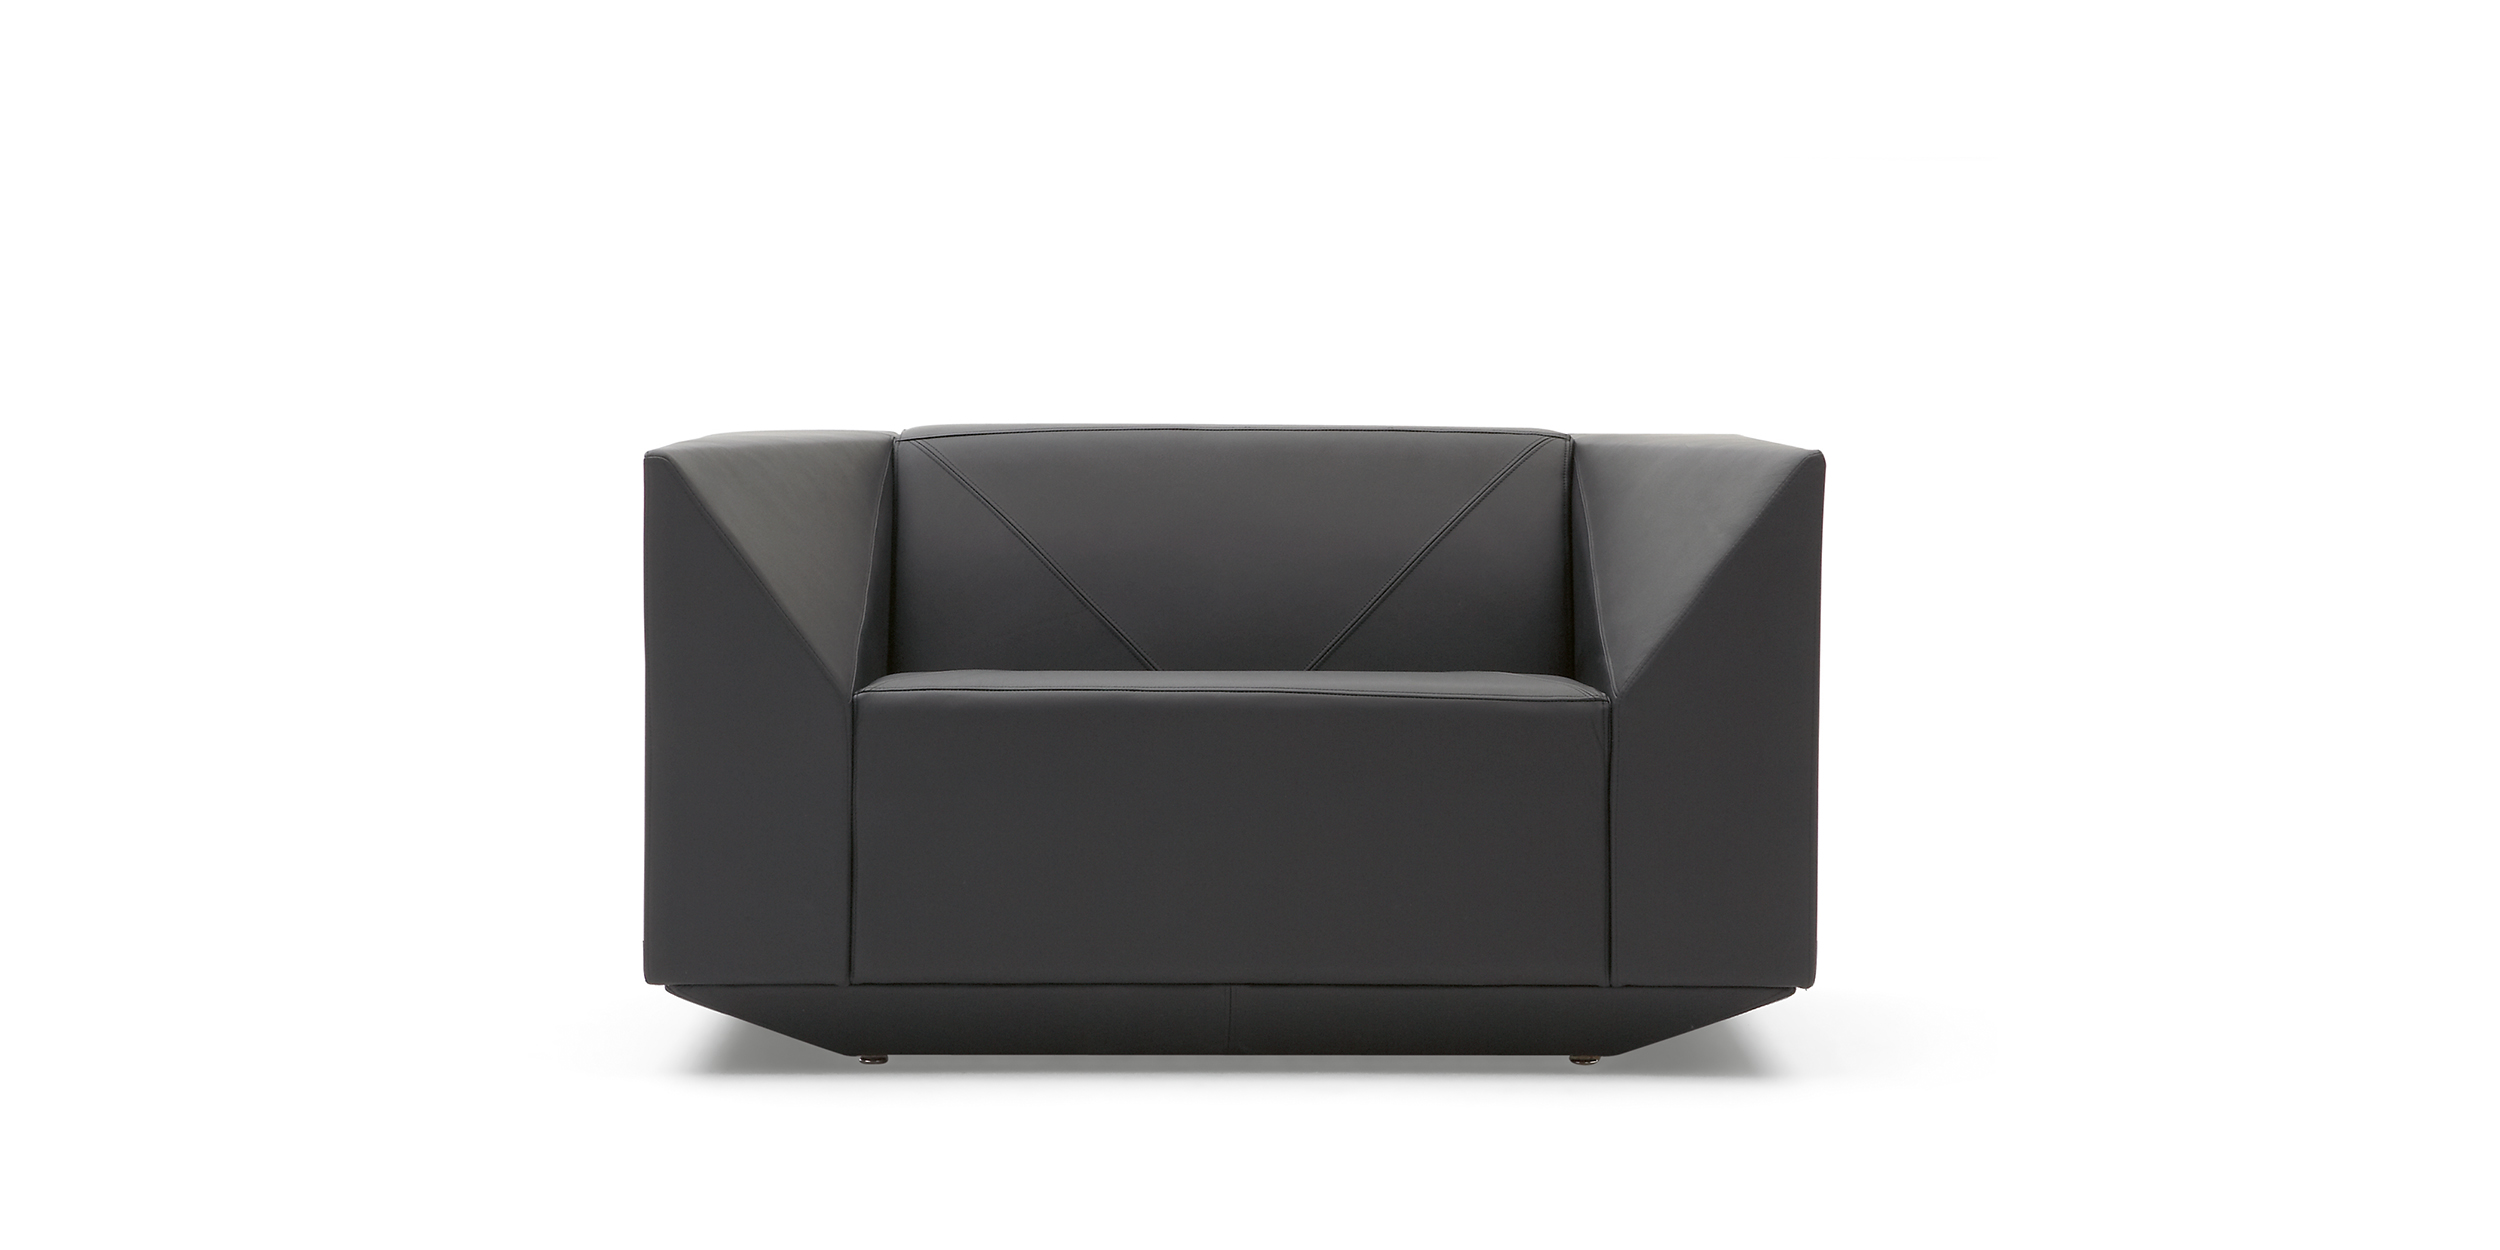 Ghost, Easy chair by Claesson Koivisto Rune